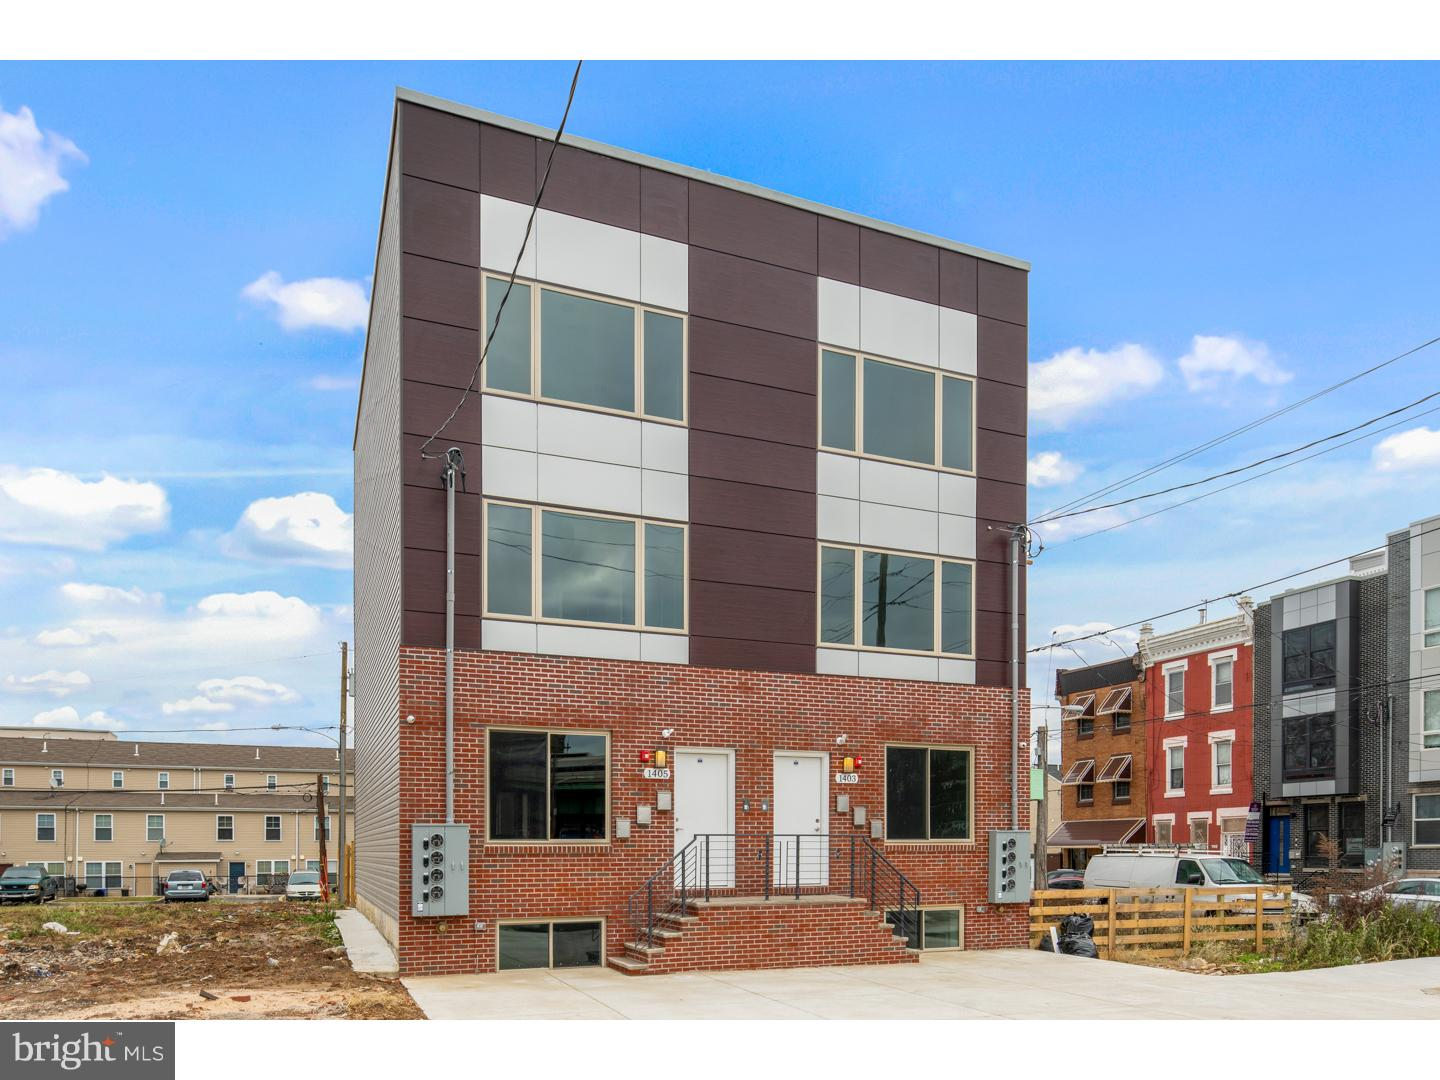 1403 N 8TH STREET, PHILADELPHIA, PA 19122